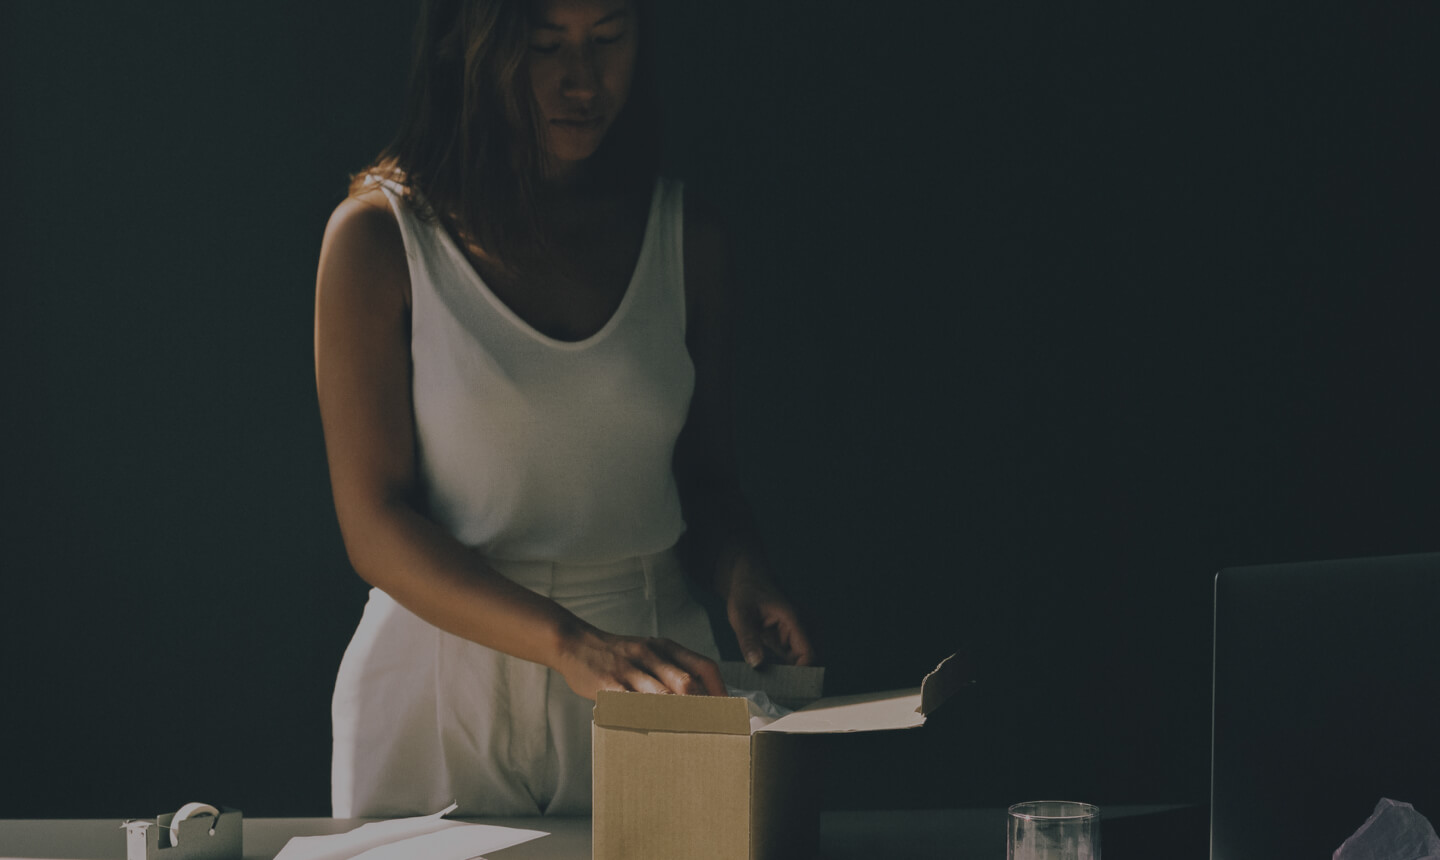 Woman in a white dress unpacking glasses